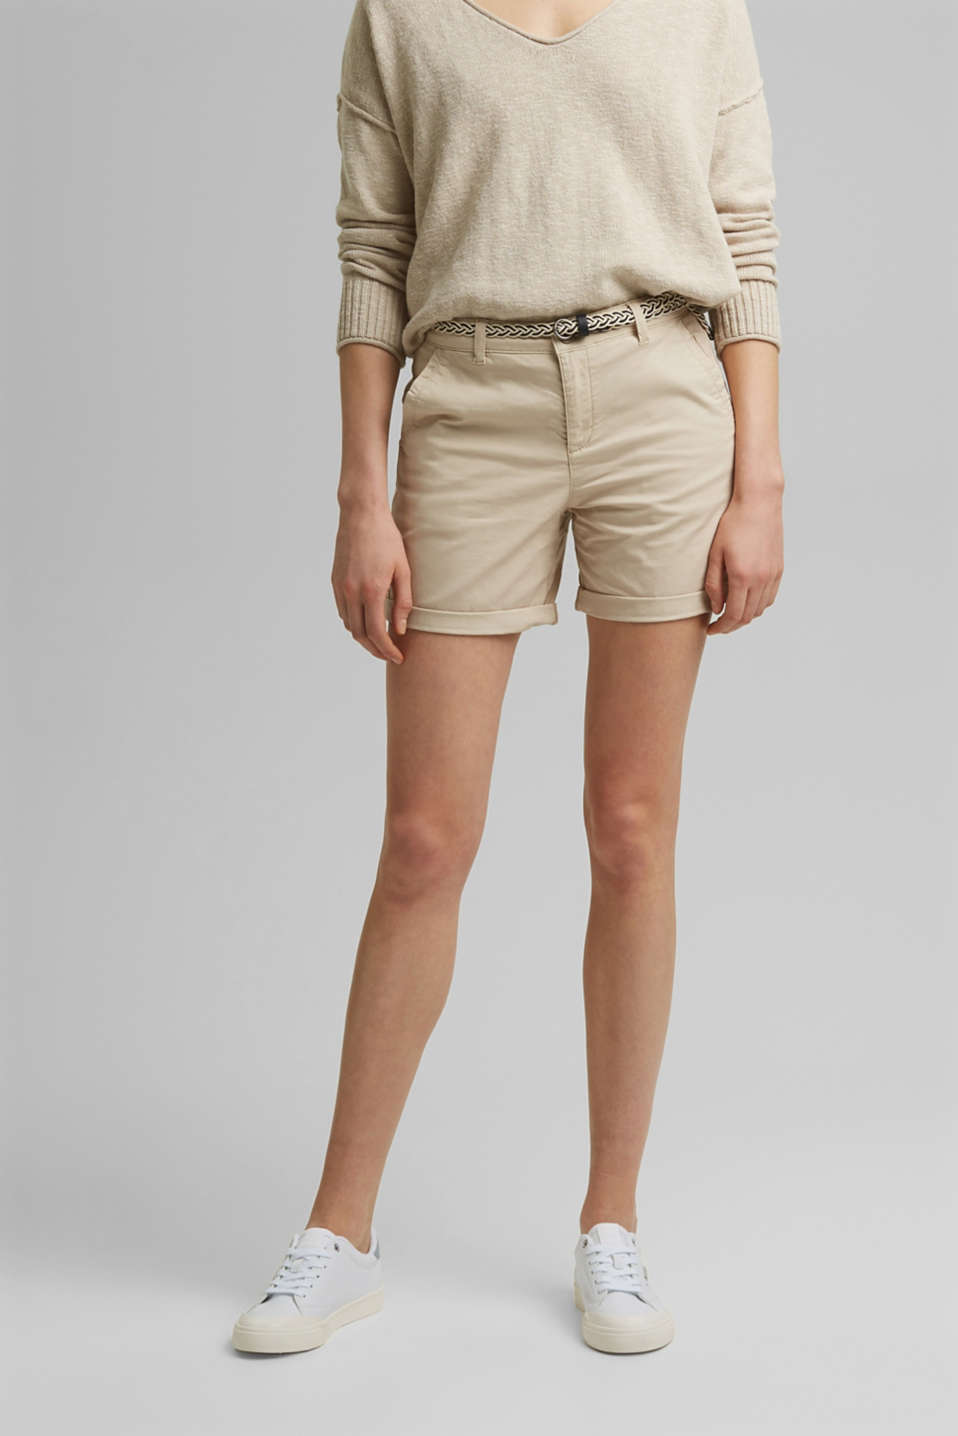 Esprit - Stretch shorts with a woven belt